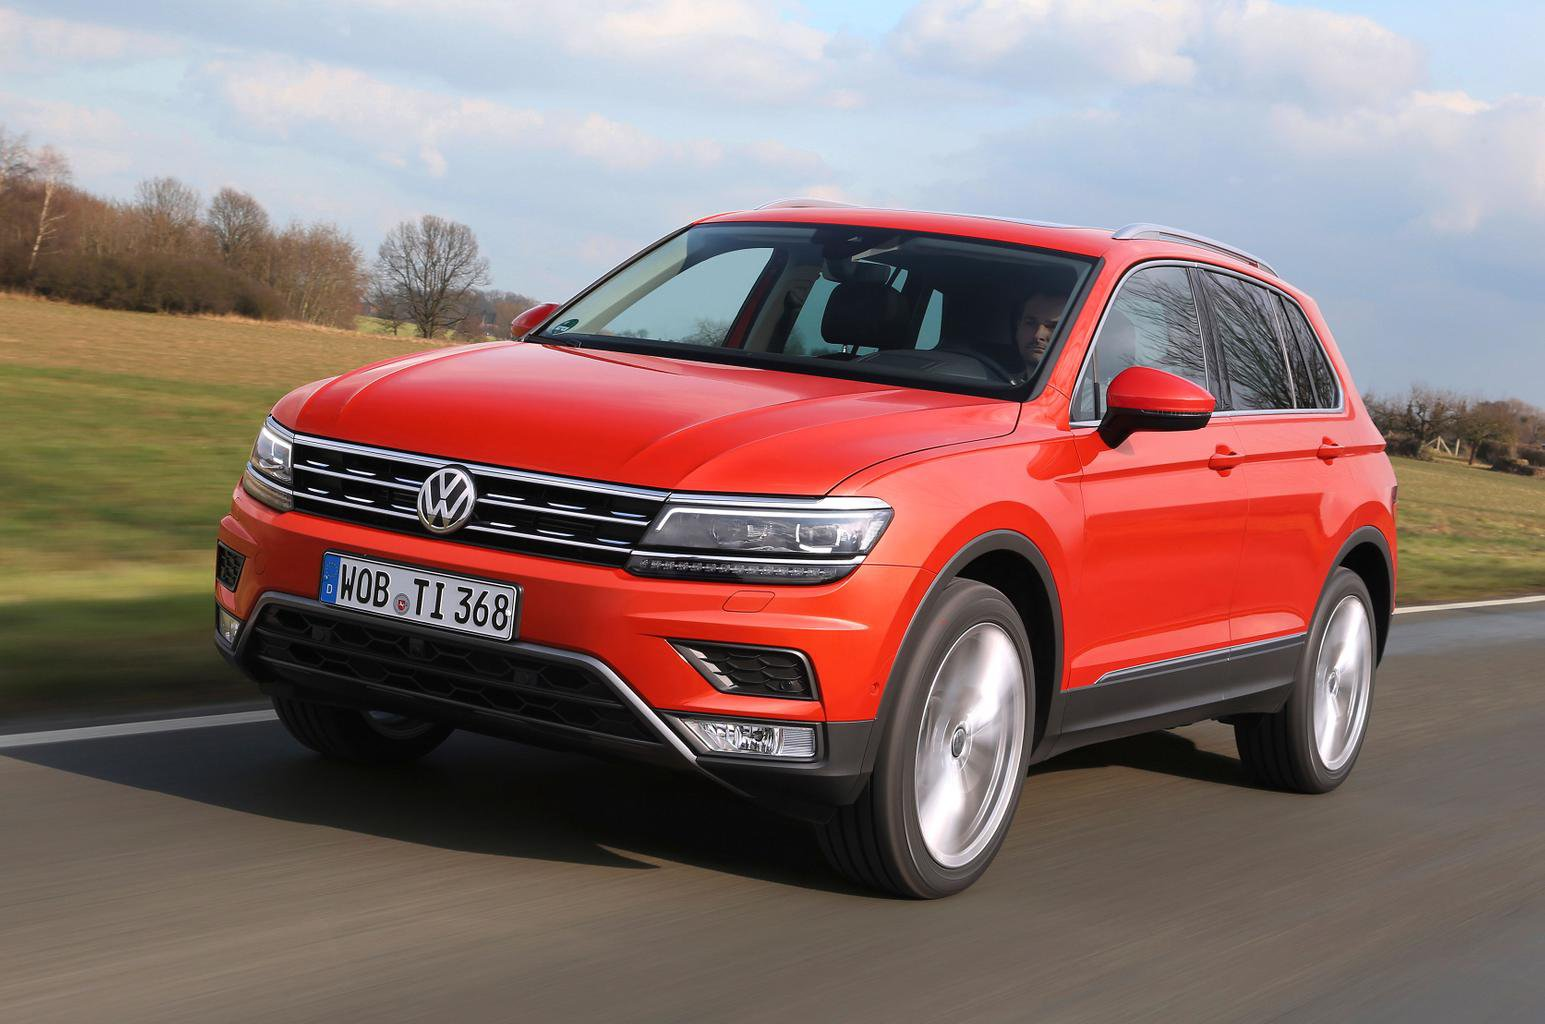 2016 Volkswagen Tiguan 2.0 TDI 150 4Motion Outdoor pack review